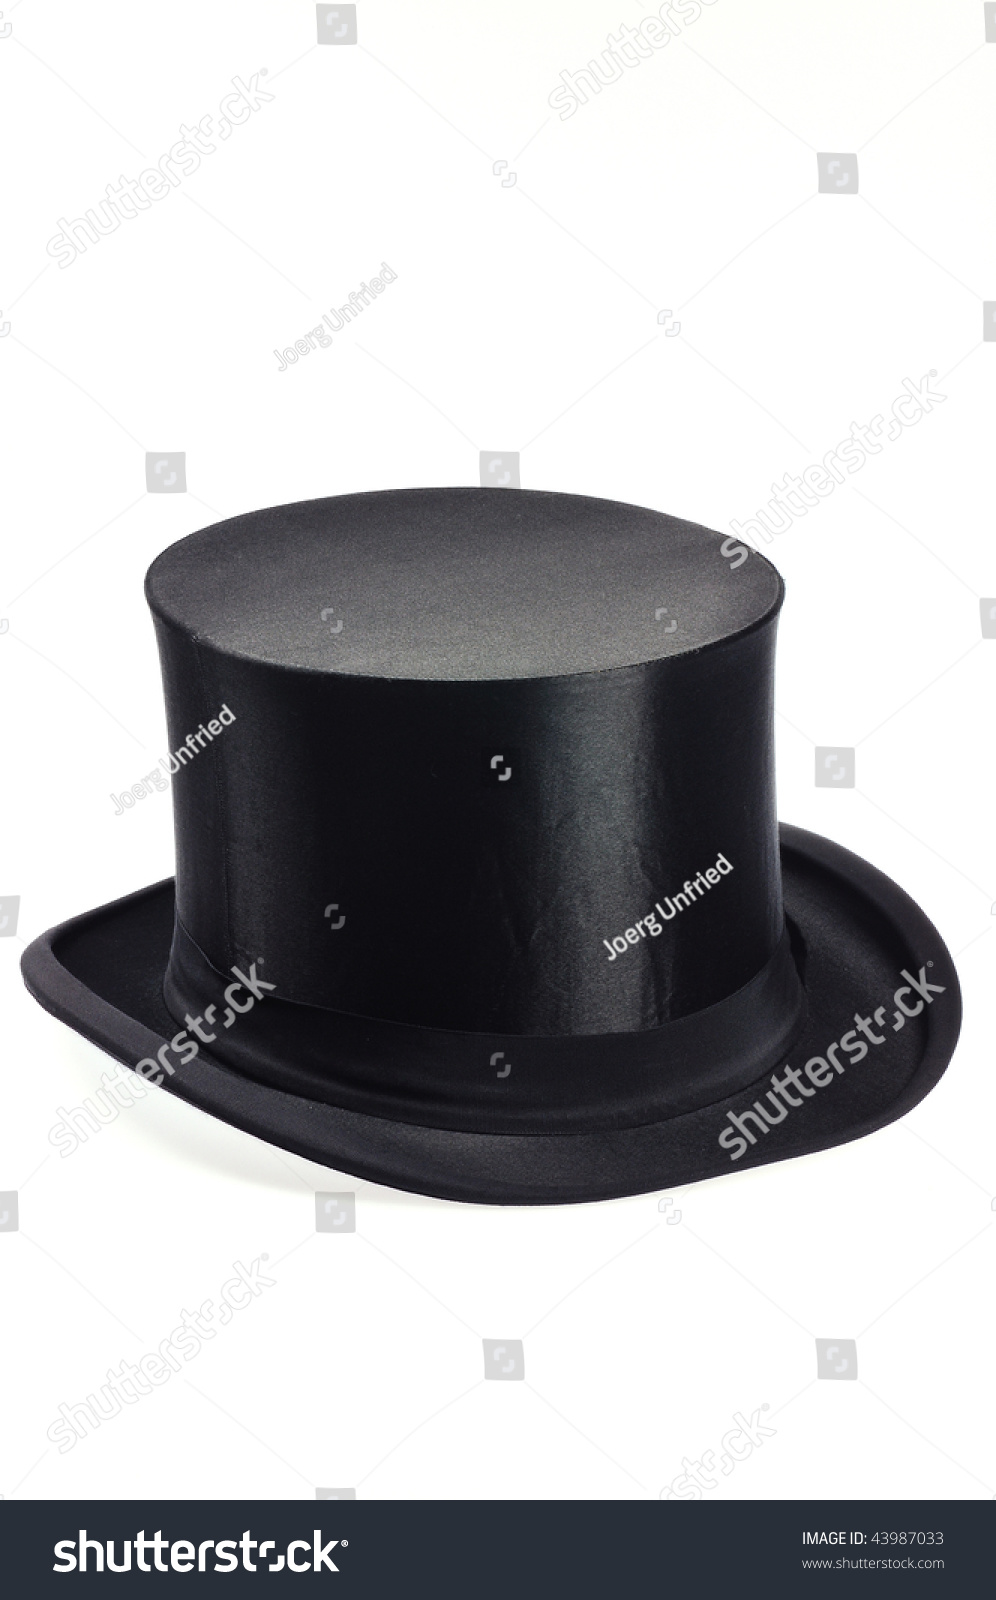 Old black collapsible top hat stock photo royalty free jpg 996x1600 Old  black hat 2640f8c1651d